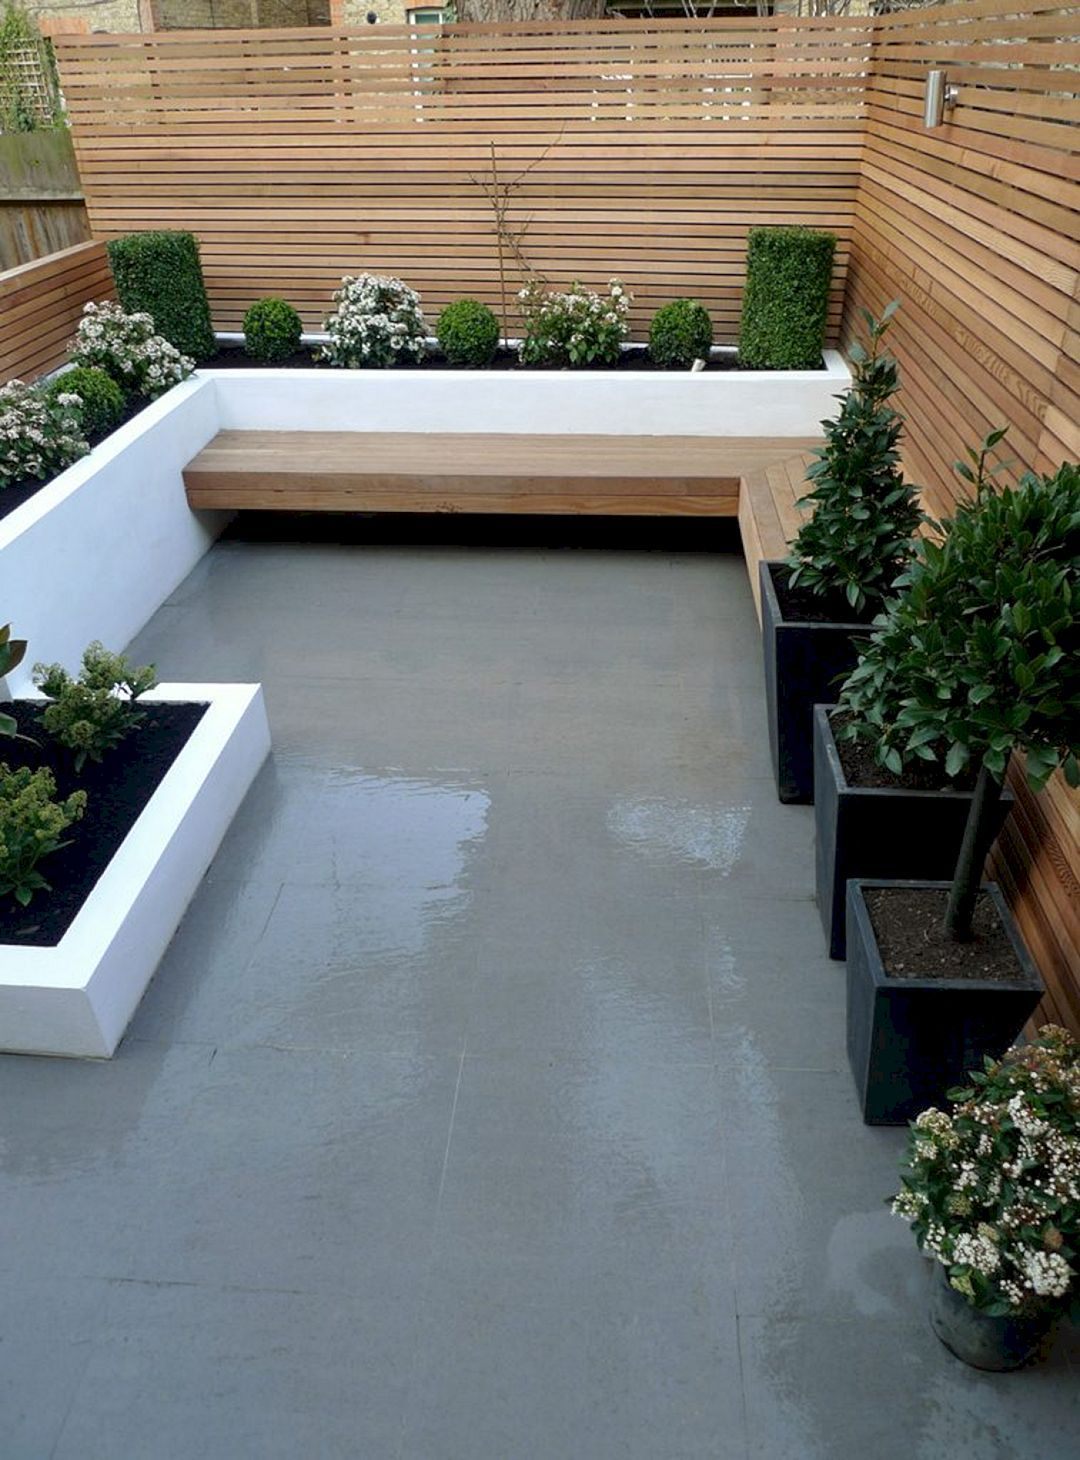 11 best diy small patio ideas on a budget garden ideas small garden landscape design small. Black Bedroom Furniture Sets. Home Design Ideas